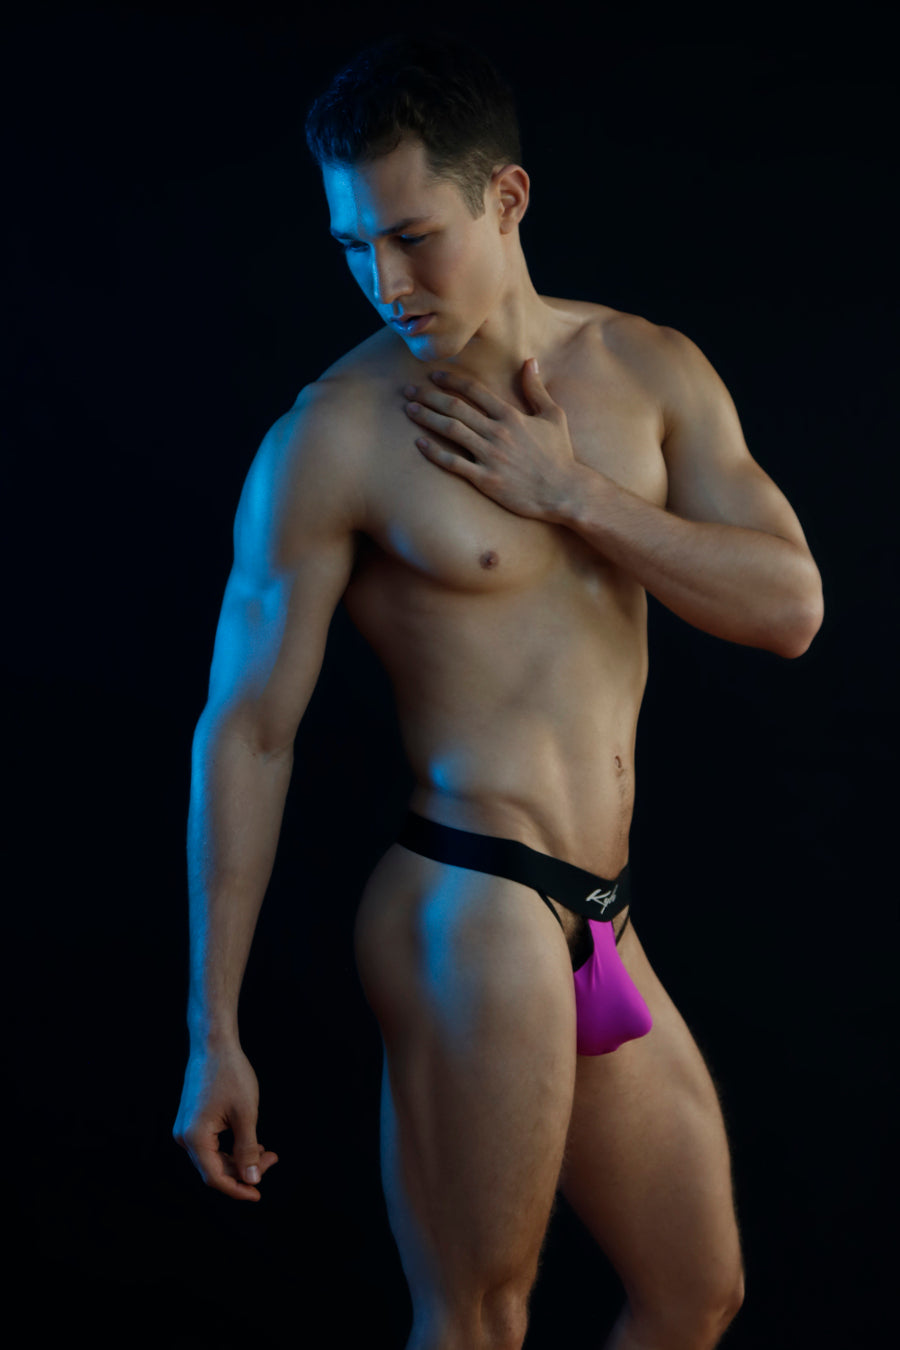 Kyle Mens G-string Underwear